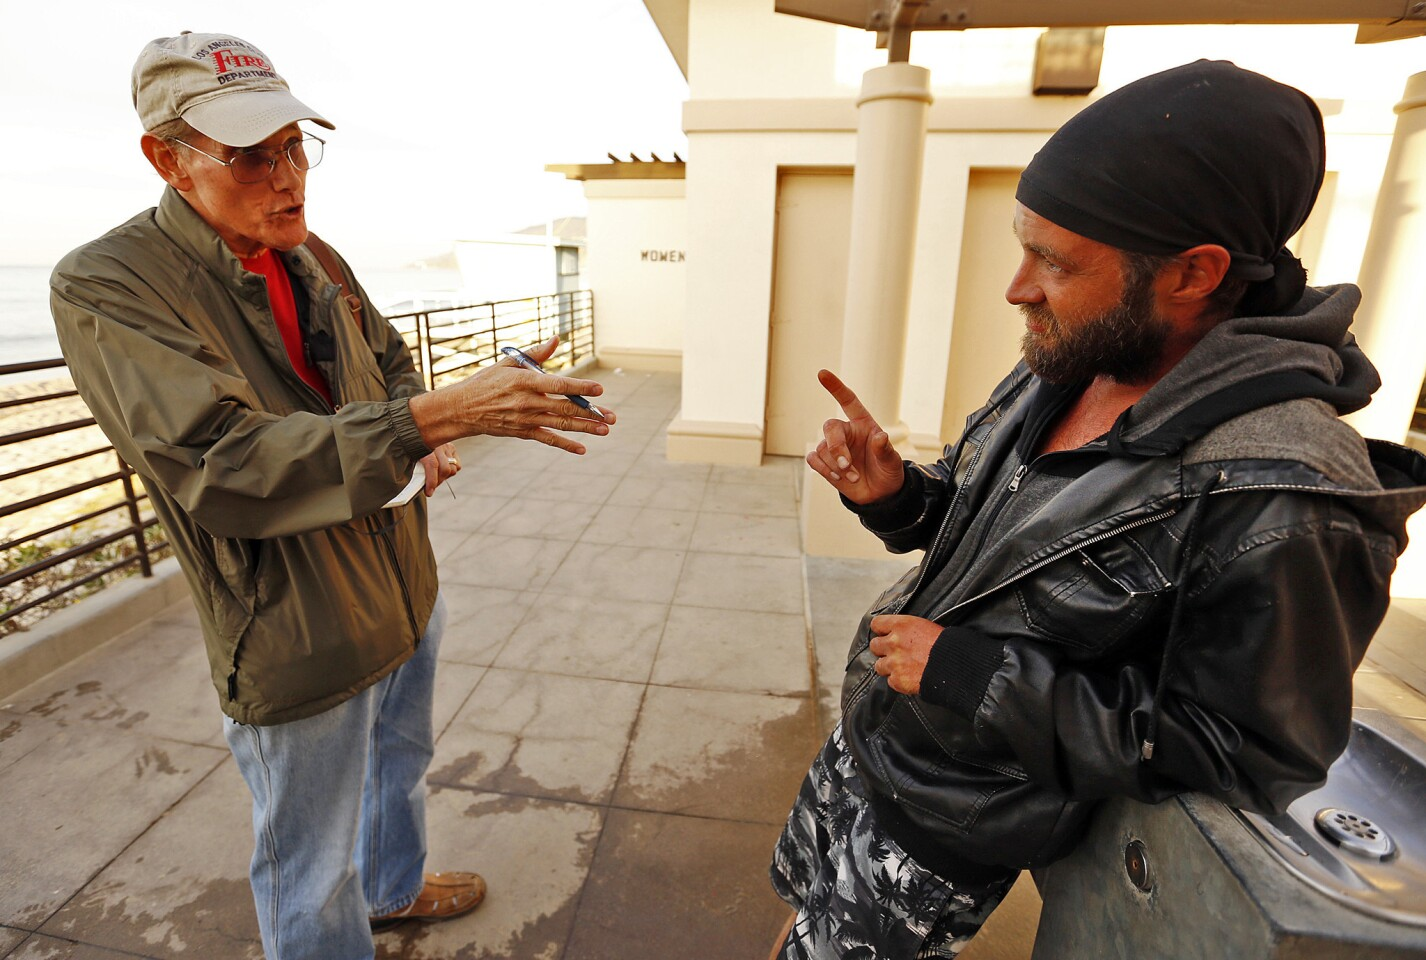 Patrick Hart, left, with the Pacific Palisades Task Force on Homelessness, talks to Brad Mark Kowalski, who is living near the beach, one of several homeless who are living in hidden encampments along Will Rogers State Beach.